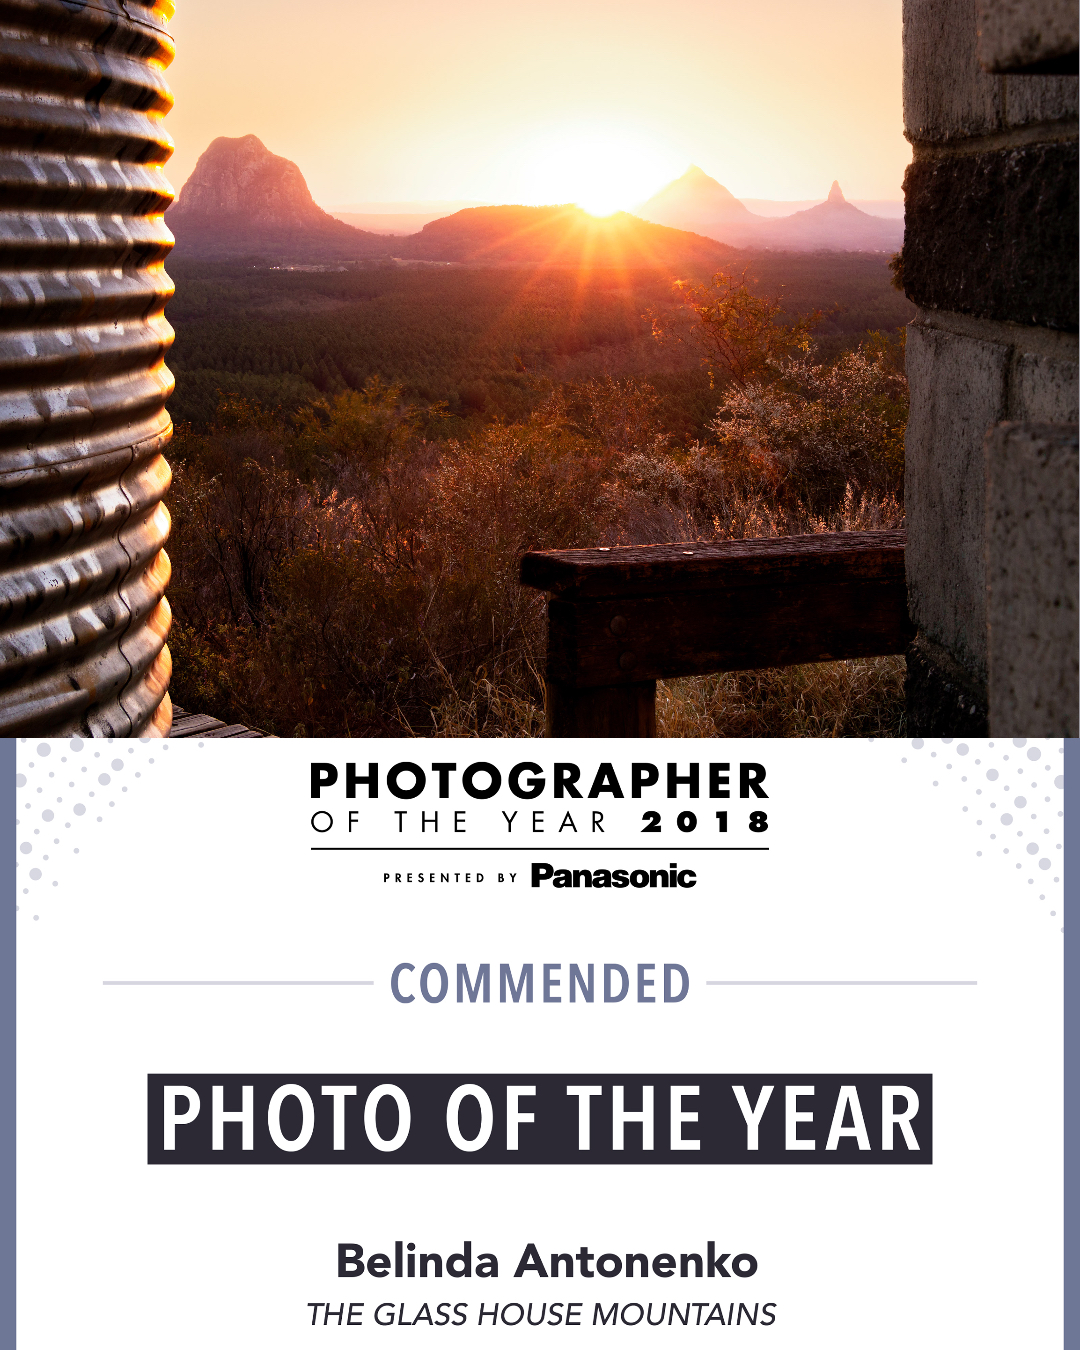 Photography - Photographer Of The Year Award - The Glass House Mountains